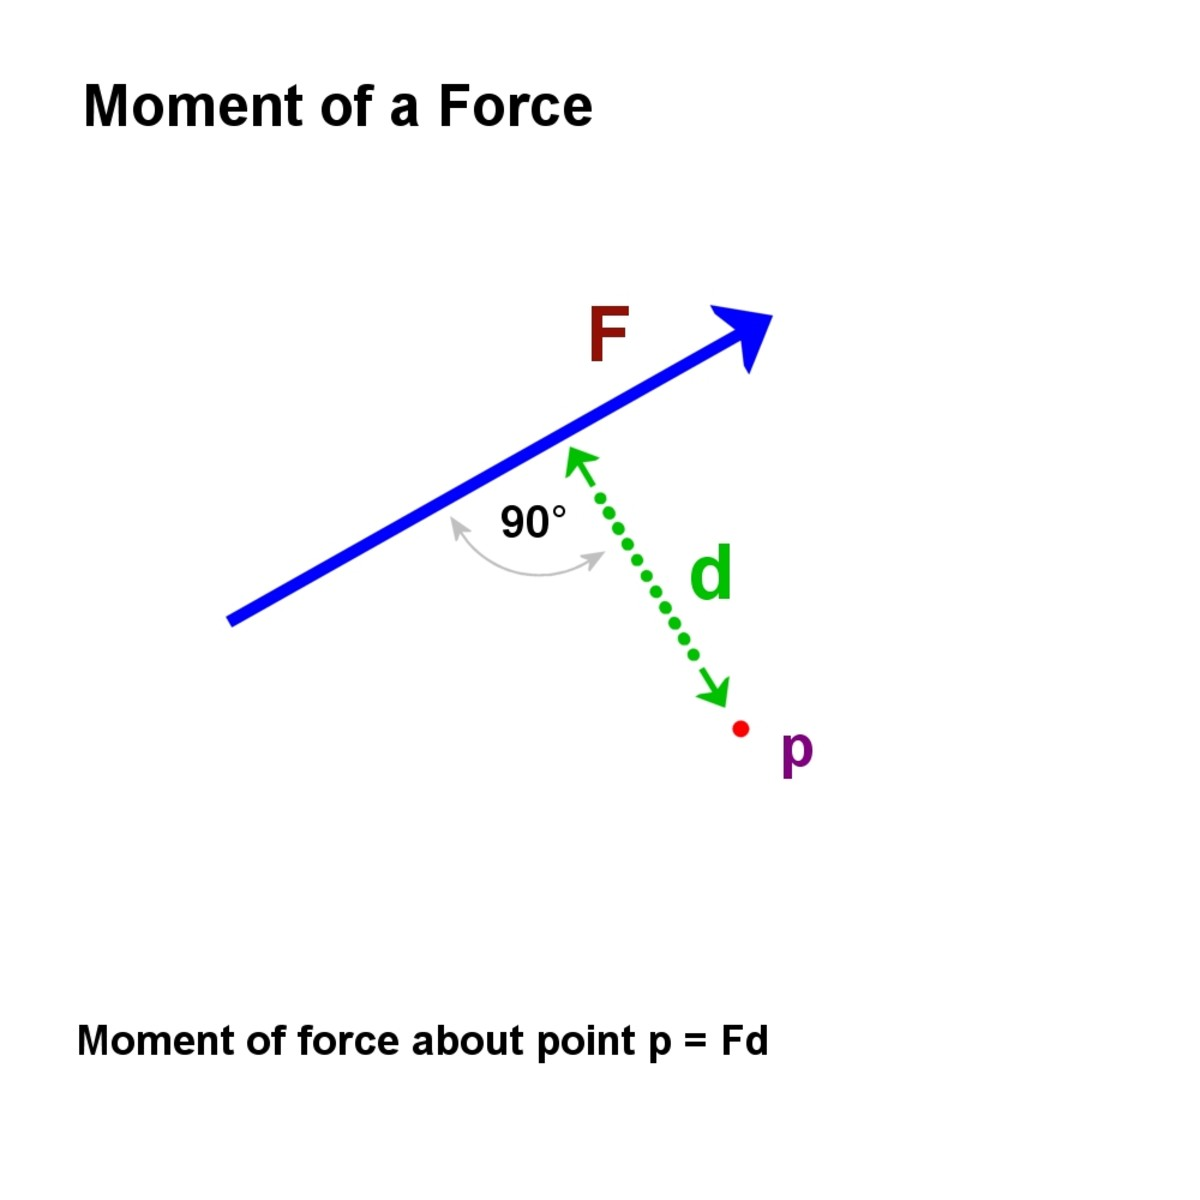 Moment of a force